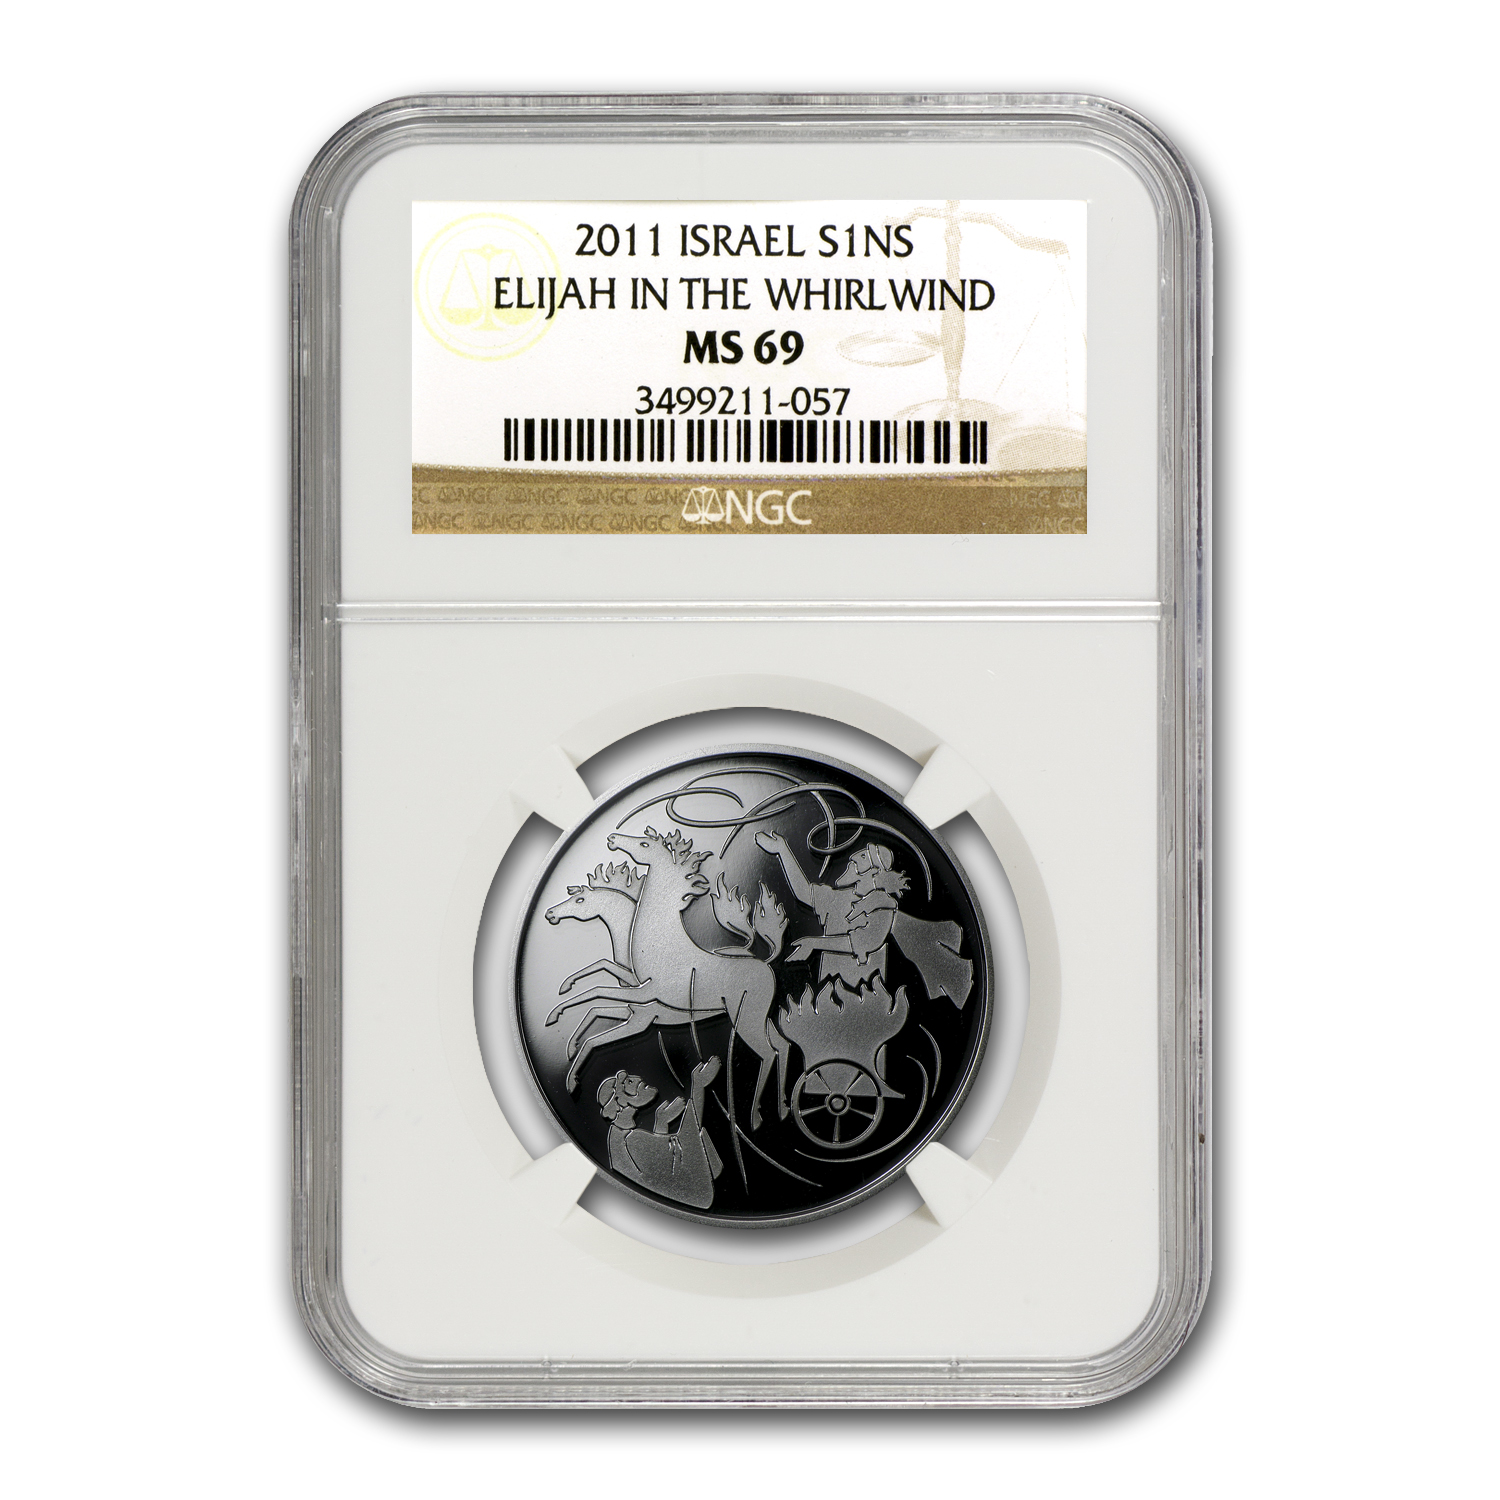 2011 Israel Elijah in the Whirlwind Silver 1 NIS MS-69 NGC